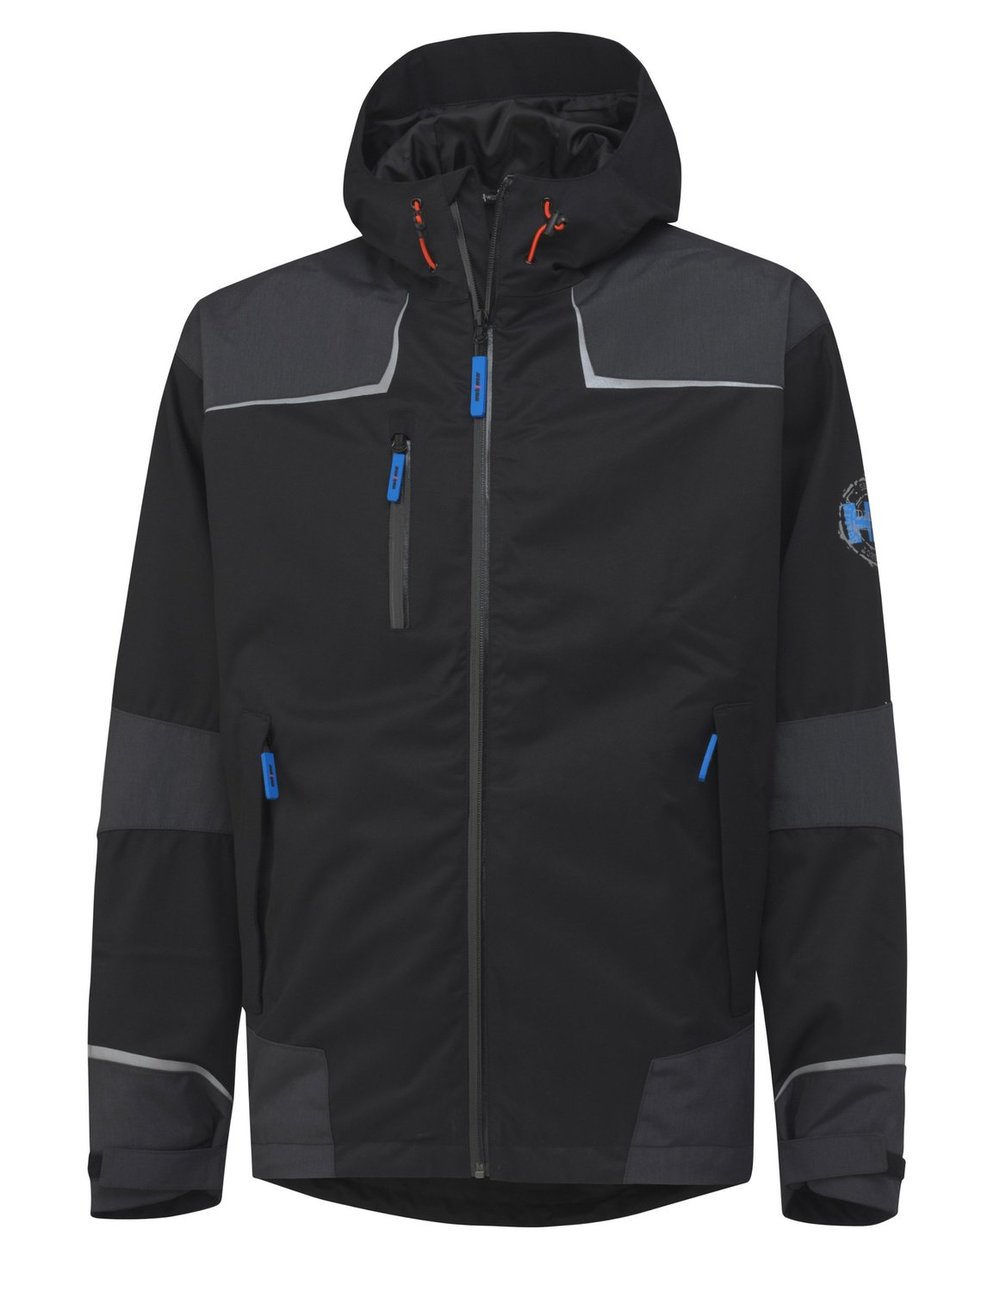 helly hansen black jacket.jpg